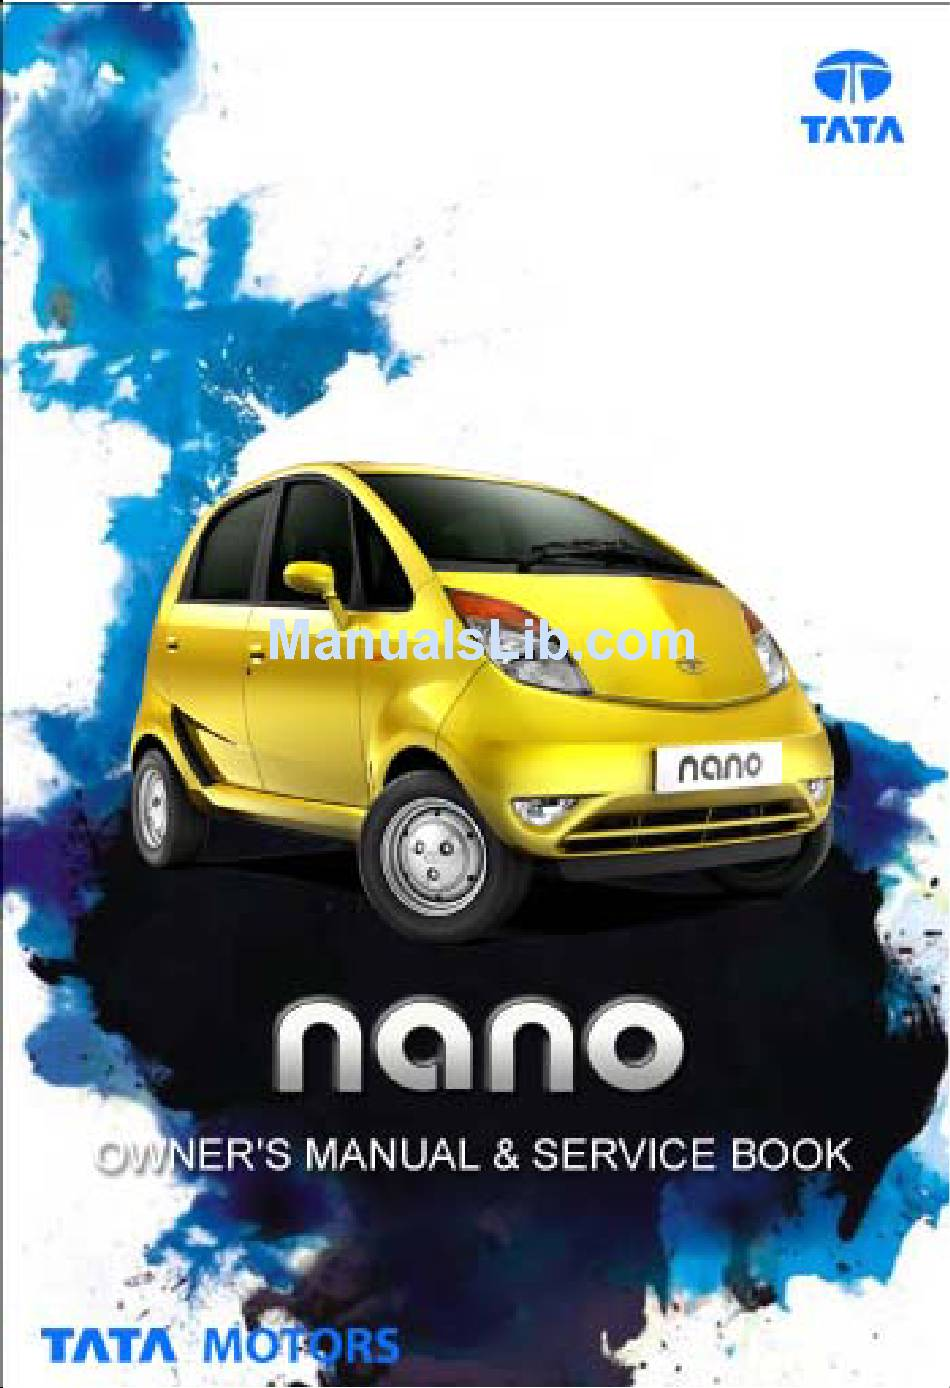 Tata Nano Electrical Wiring Diagram Pdf from static-data2.manualslib.com